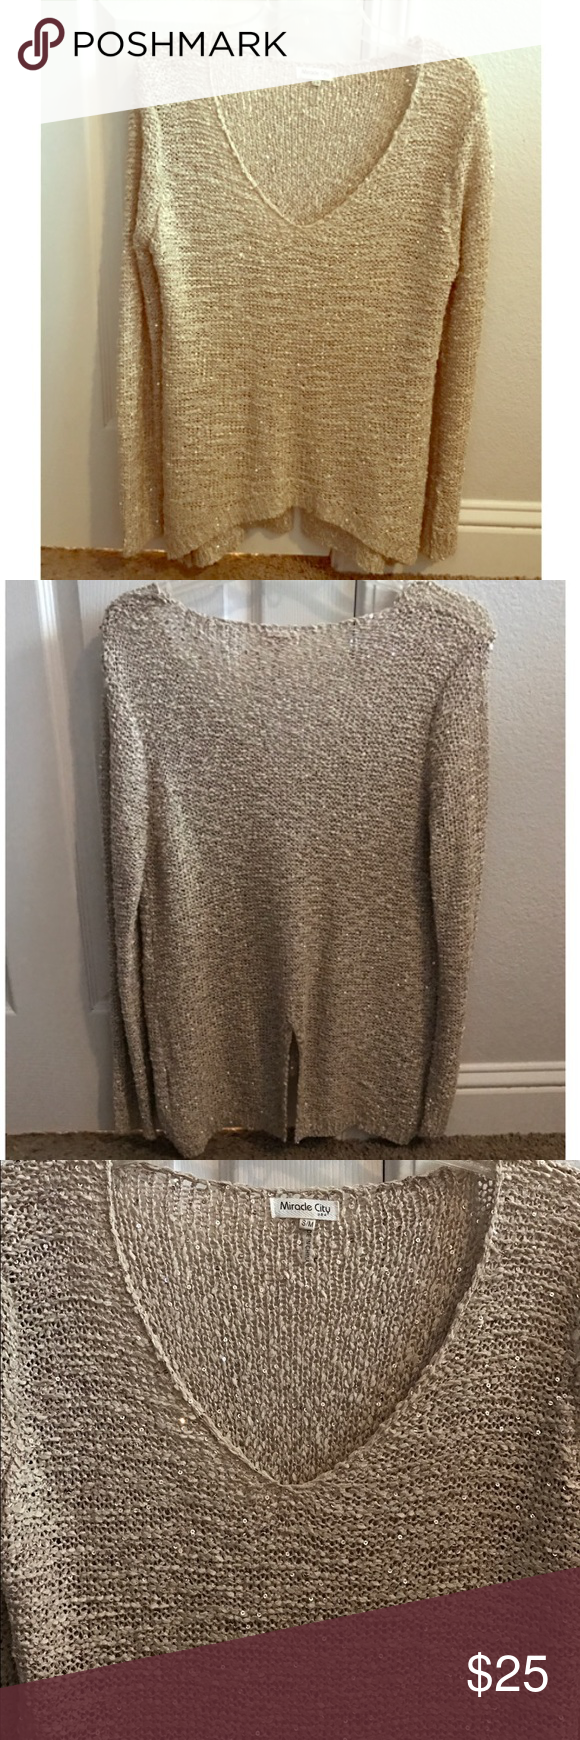 Gold Sequin Woven Knit V Neck High Low Sweater Gorgeous long ...